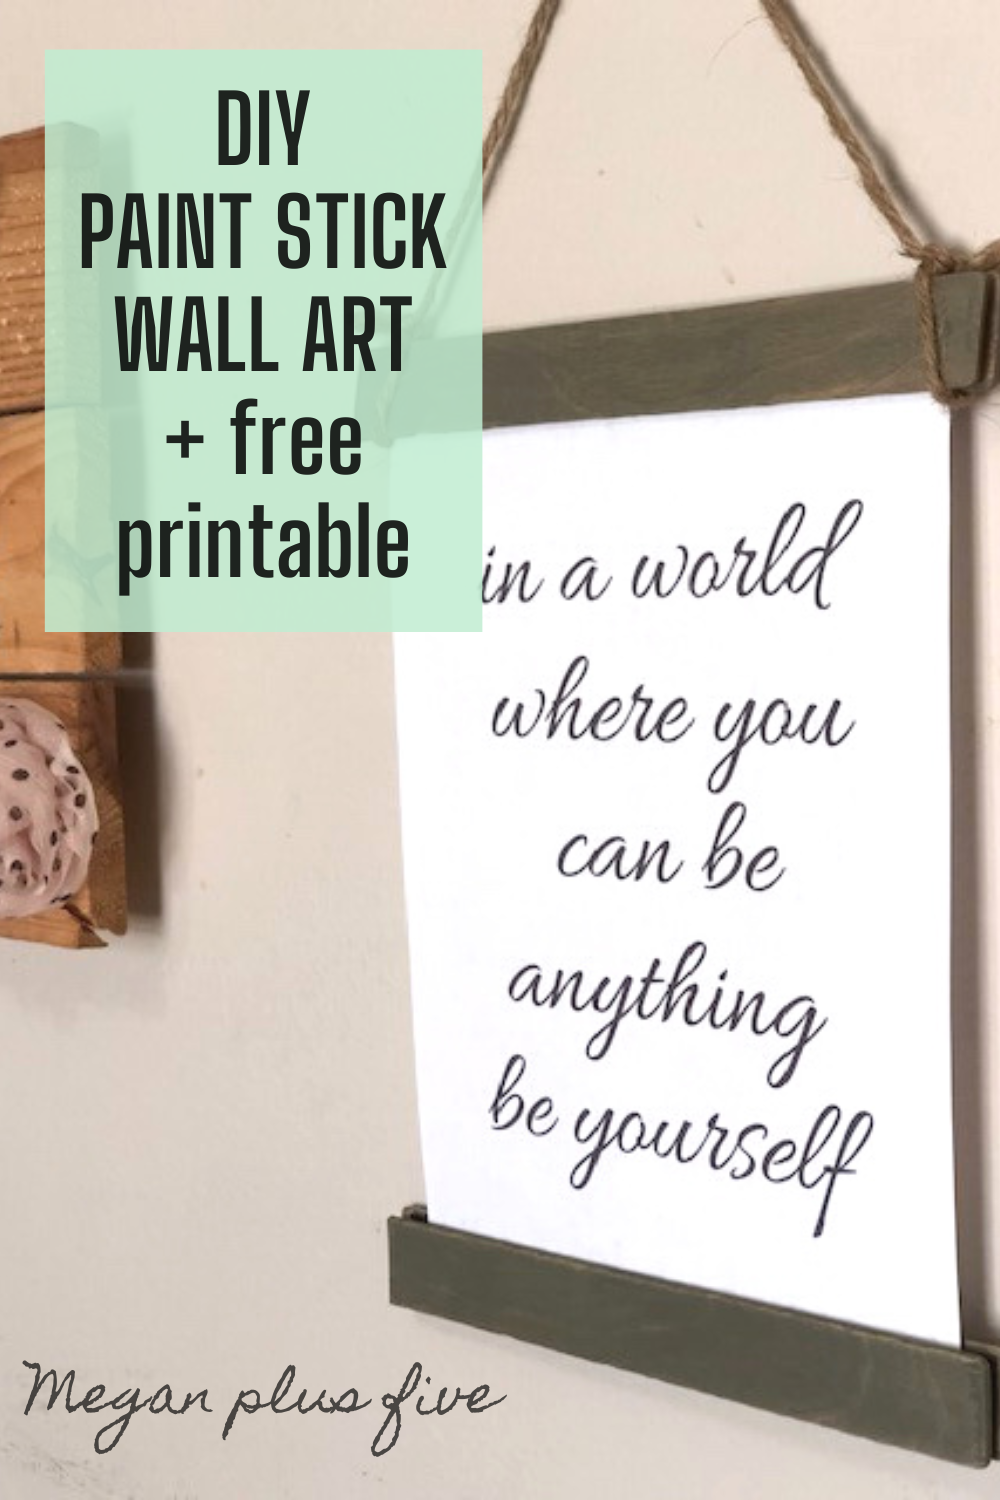 How to make interchangable printed wall art at home using paint sticks. DIY stir stick wall art. Print from home computer to make beautiful and rustic wall hangings for cheap. DIY farmhouse stir stick decor.